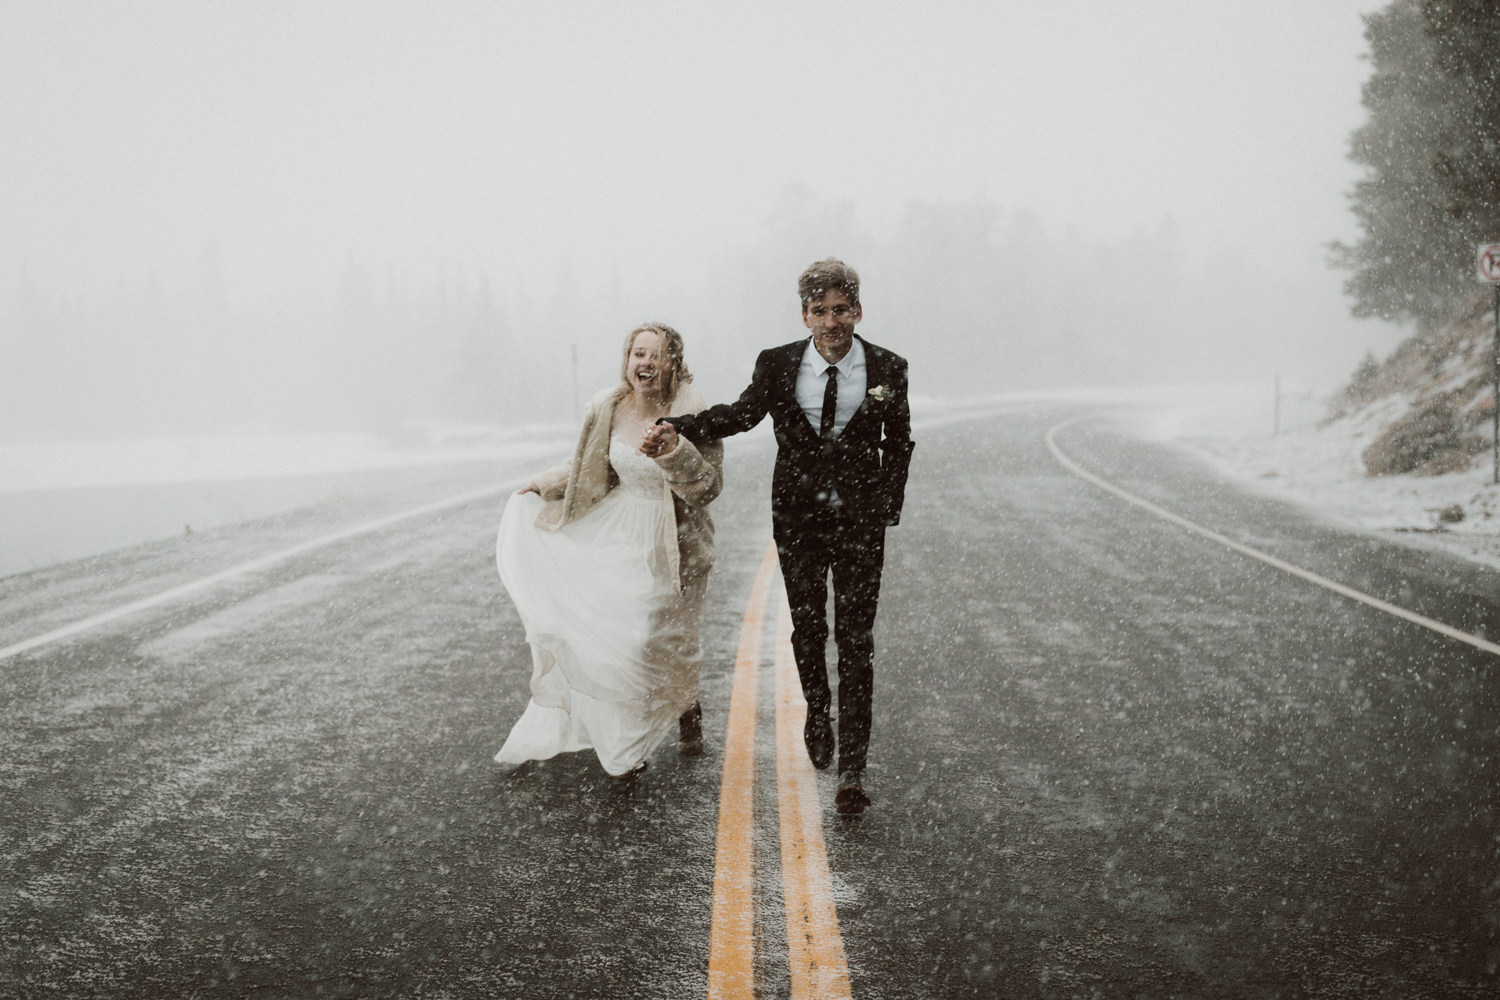 colorado-intimate-wedding-photographer-87.jpg